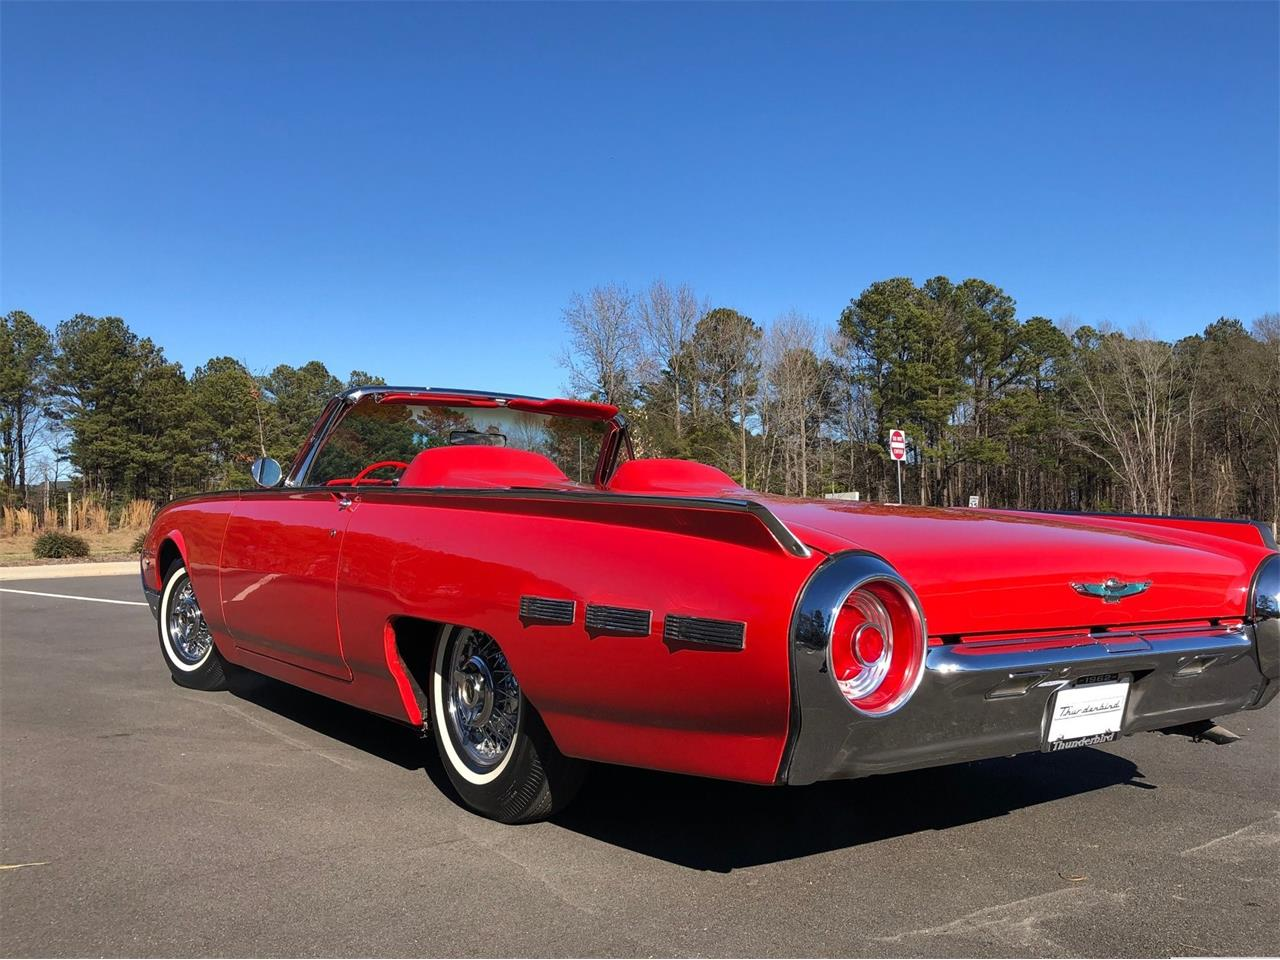 1962 Ford Thunderbird Sports Roadster (CC-1231121) for sale in Schertz, Texas